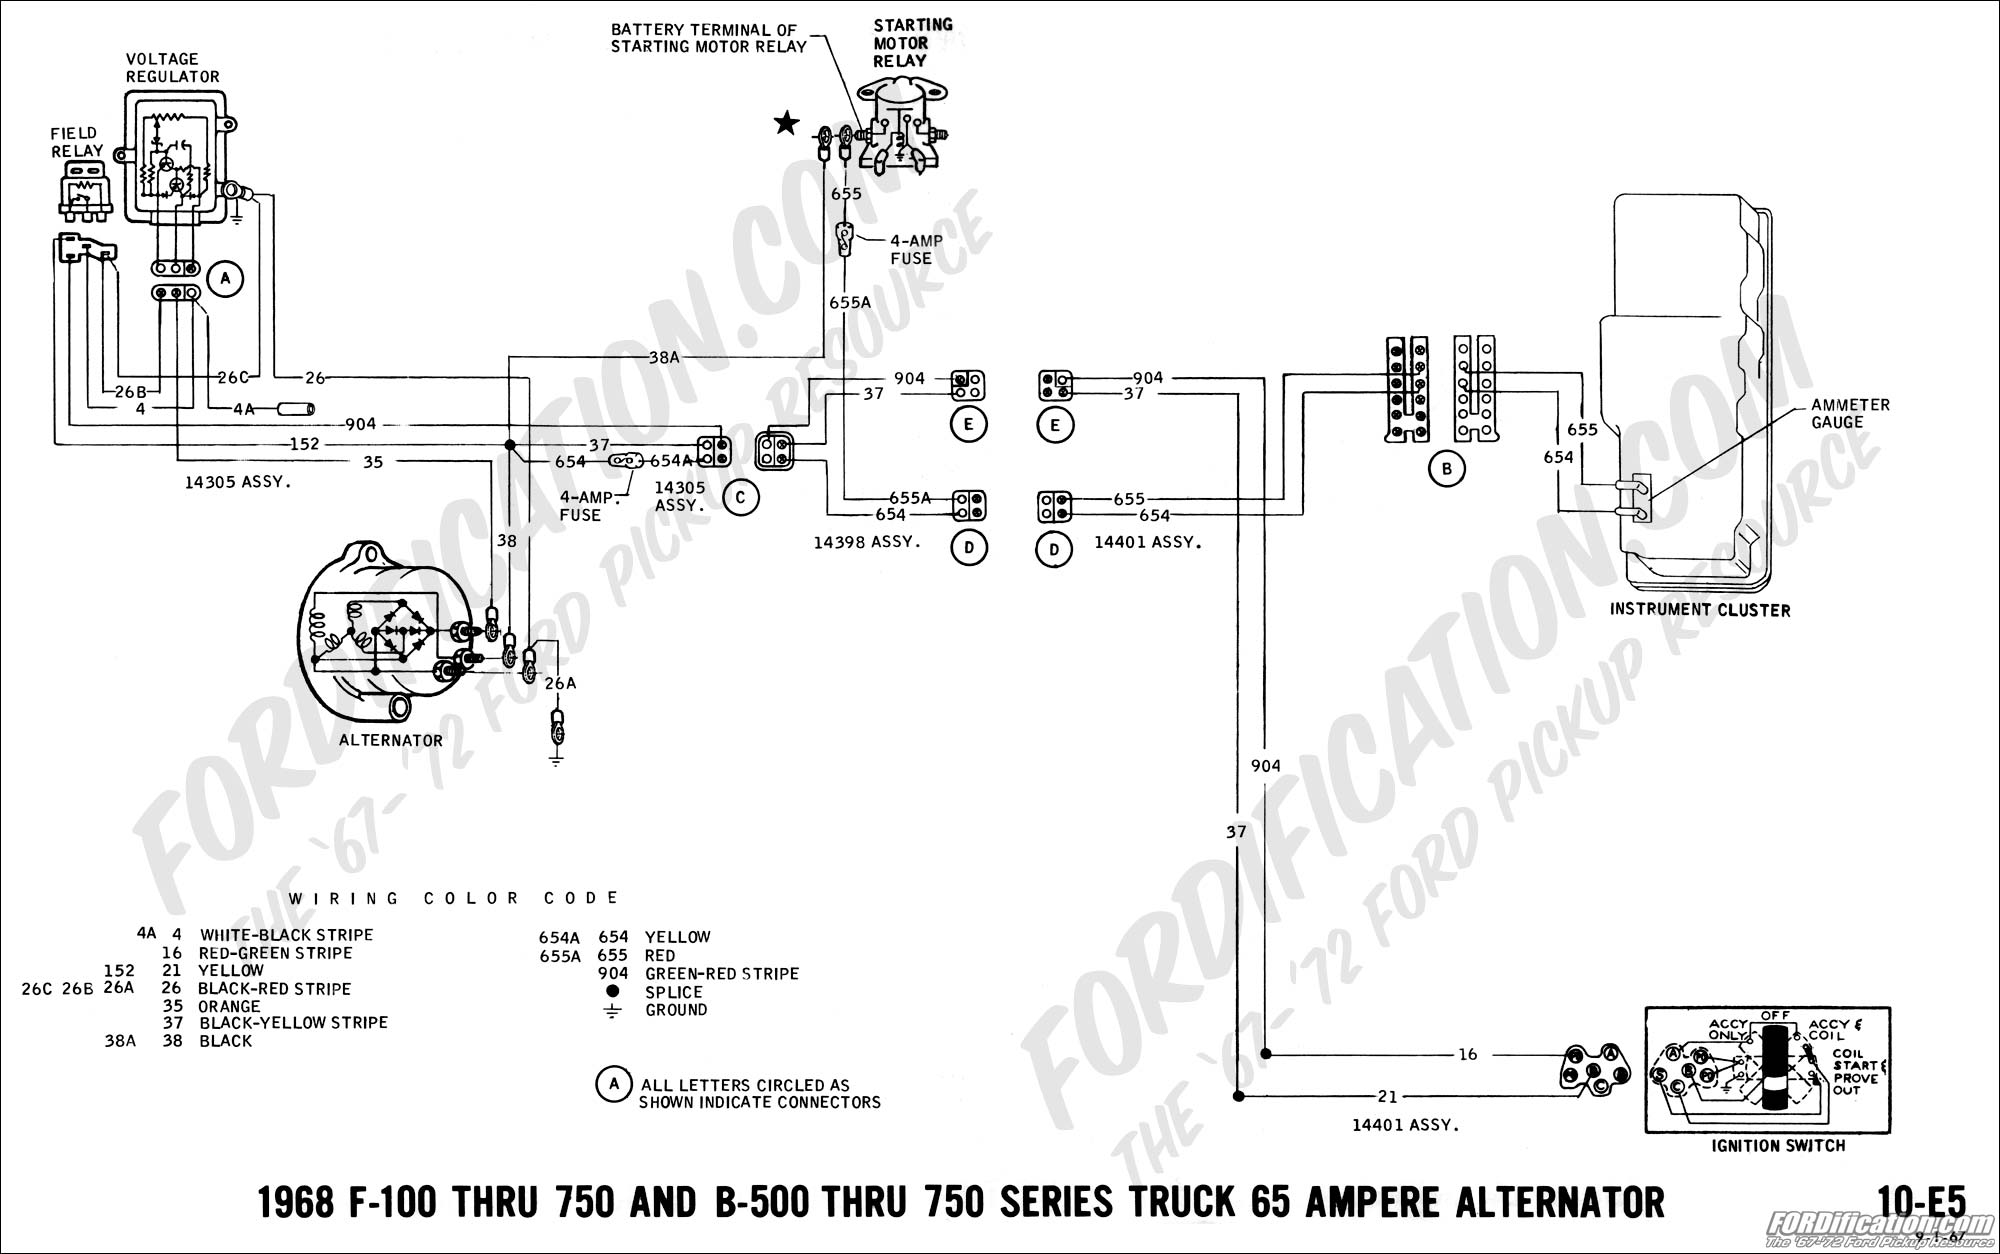 68 07 ford truck technical drawings and schematics section h wiring 1970 ford wiring diagram at readyjetset.co